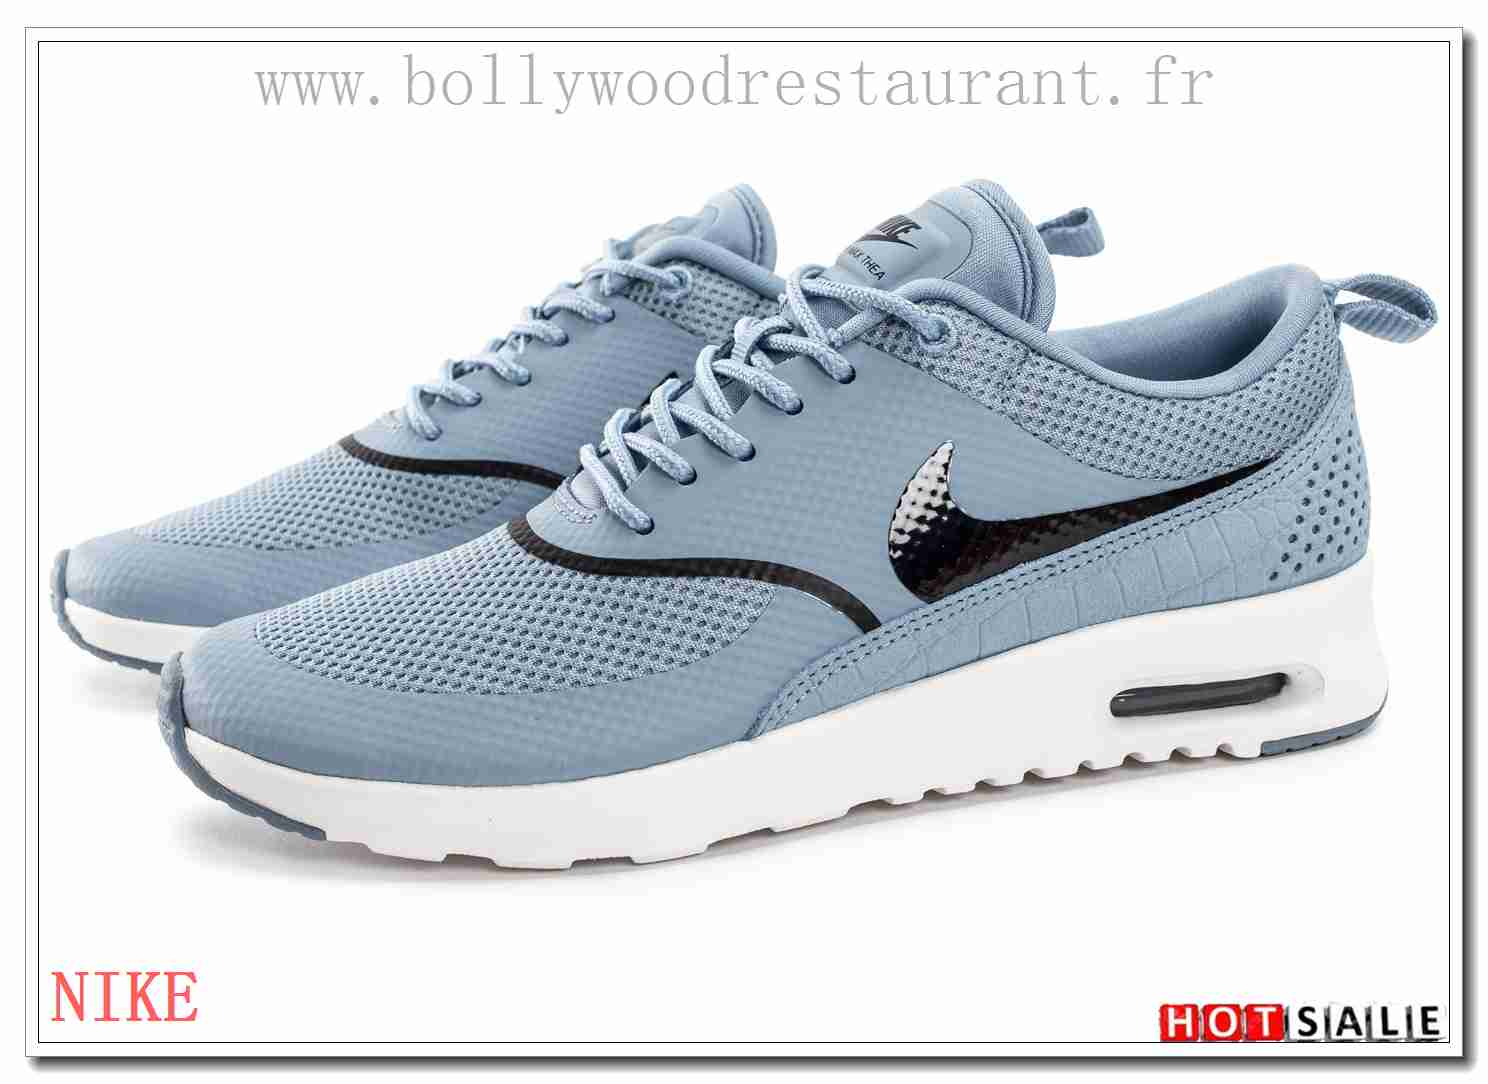 the latest 34cf3 3bbe3 UJ4848 Cachemire 2018 Nouveau style Nike Air Max Thea - Femme Chaussures -  Promotions Vente - H.K.Y. 541 - Taille   36~39